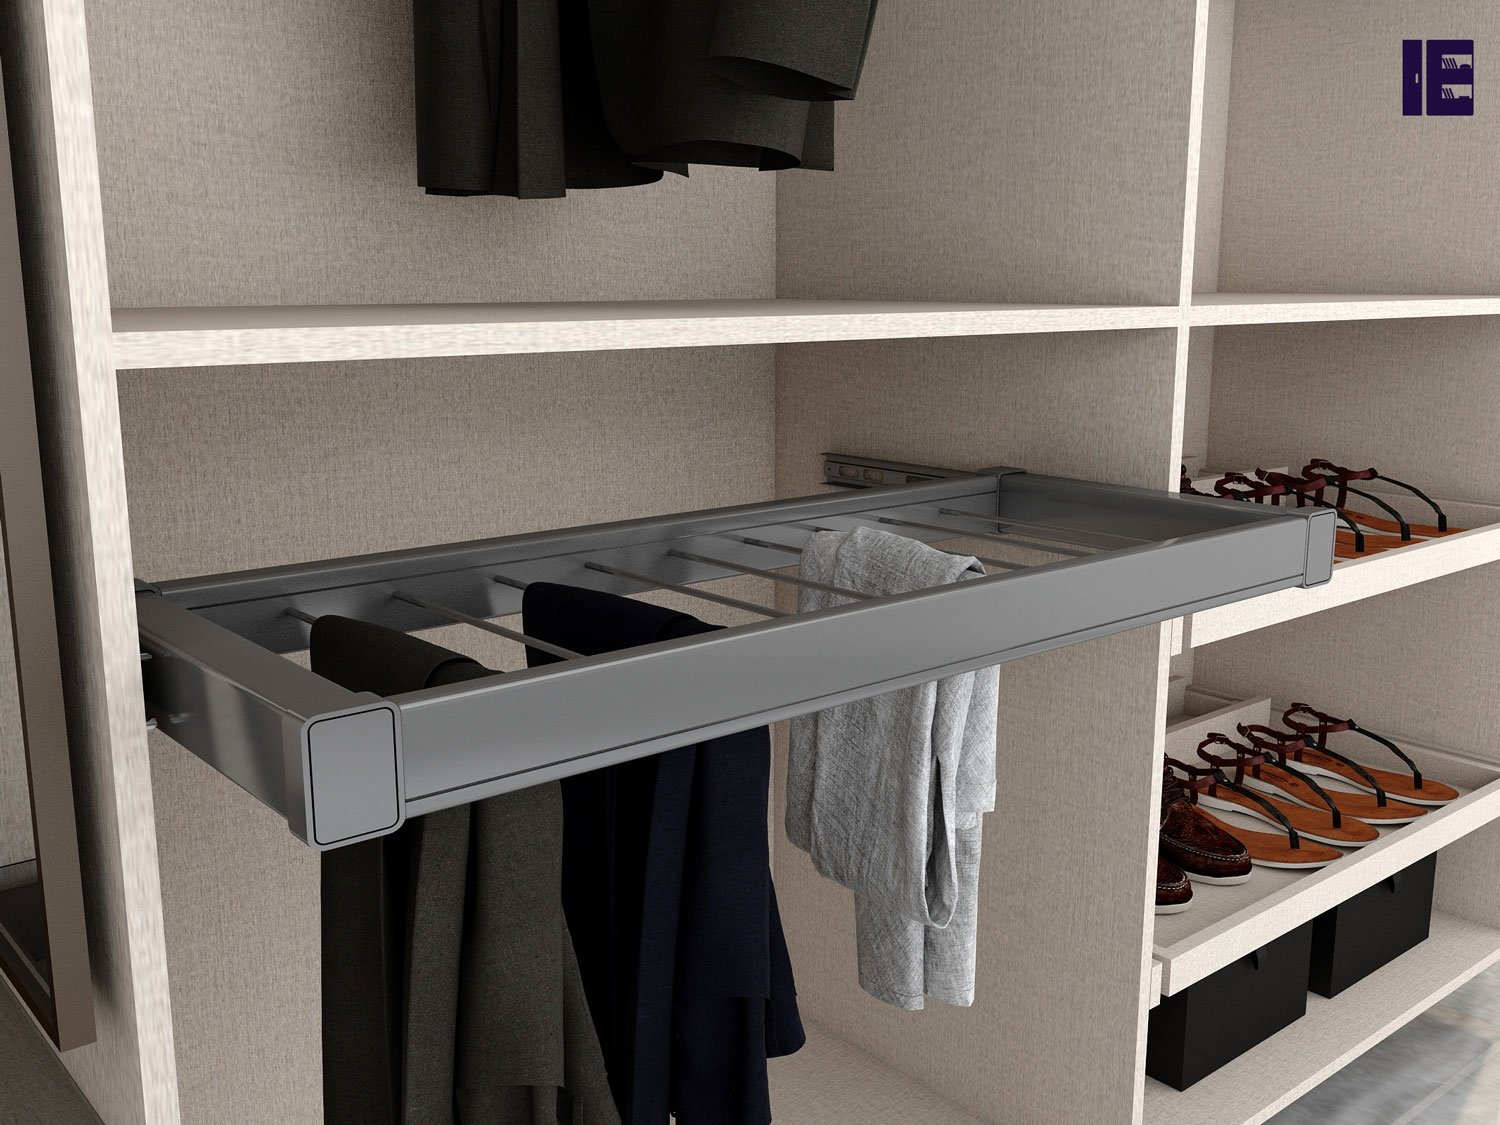 Trouser Pullout Wardrobe Accessories